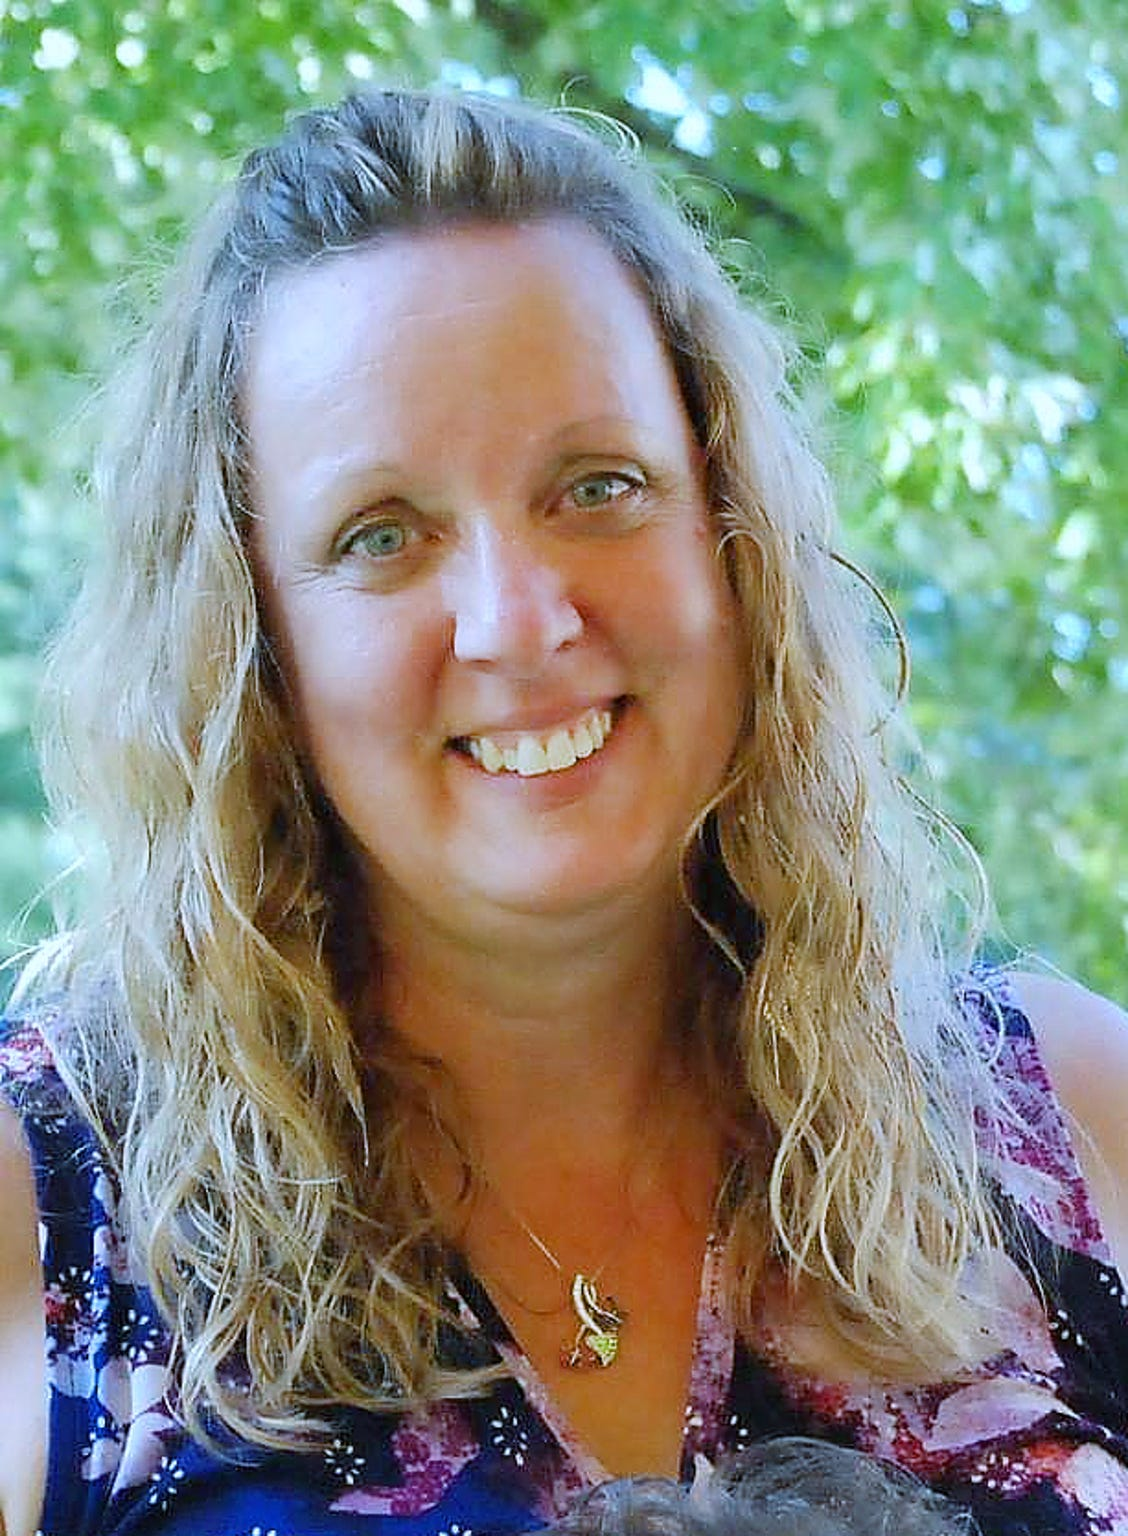 Carrie graduated from Delta College in 1994 and spent 26 years as a registered respiratory therapist with home care and hospital medical systems in Grayling, West Branch, Midland, Bay City, Battle Creek, Saginaw and Grand Blanc.